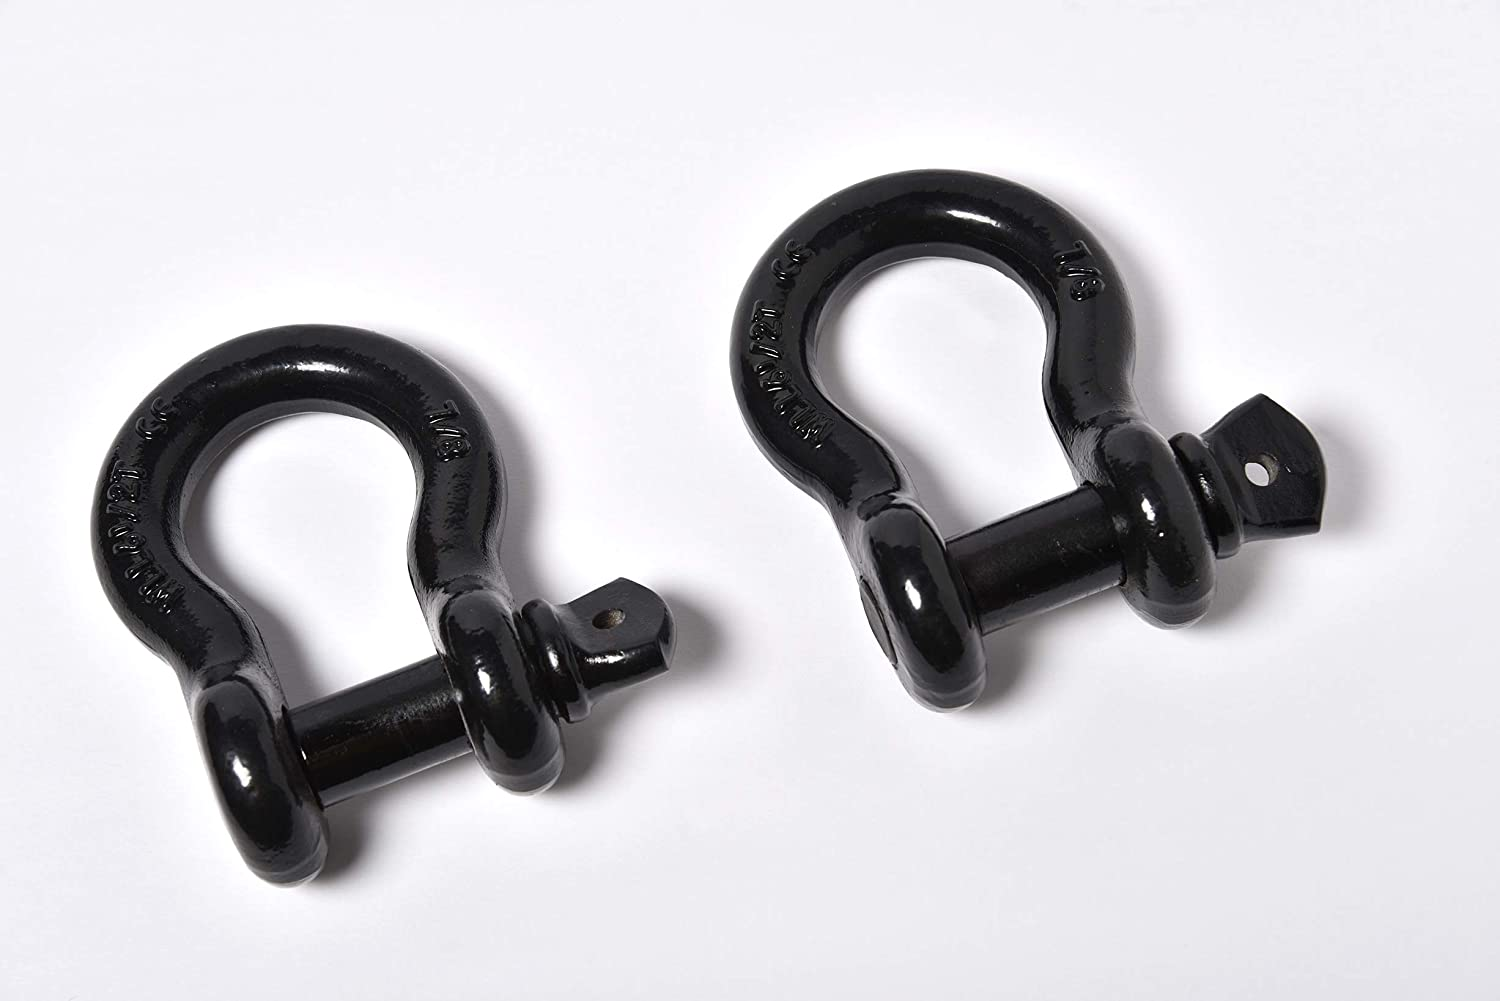 Galvanized//Blue 2 Pack Bow Shackle 7//8 inch ALFA Wheels D-Ring Rugged WLL Working Load Limit 6.5 Tons 18700 lbs-1 Screw Threaded Pin Heavy Duty Lifting Rigging Tow Hummer Recovery Anchor